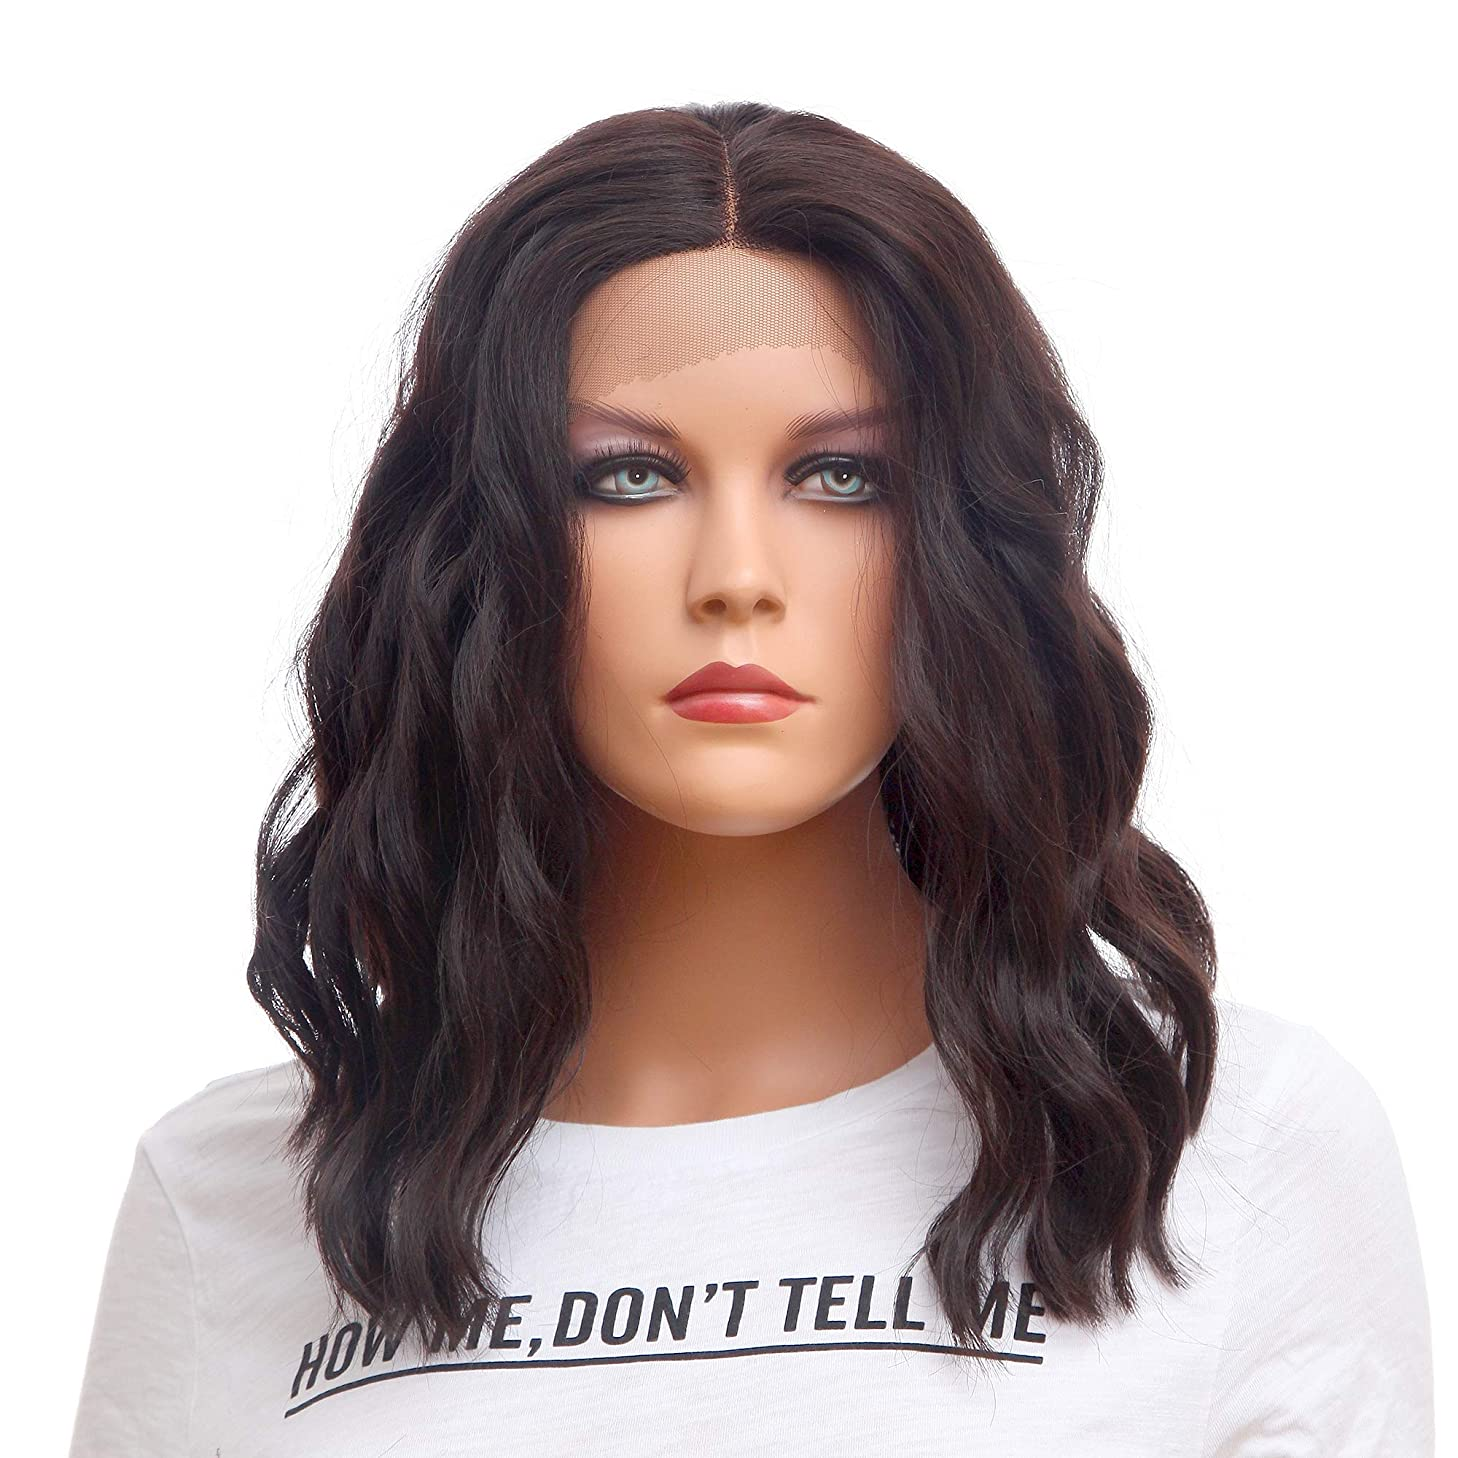 """NFACE Bob Front Lace Wigs for Black Women Loose Body Deep Water Wavy Natural Wave Shoulder Length Middle Part Replacement wigs Hairs Heat Resistant Synthetic Fiber Half Hand Tied 4# Dark Brown 175g16"""""""